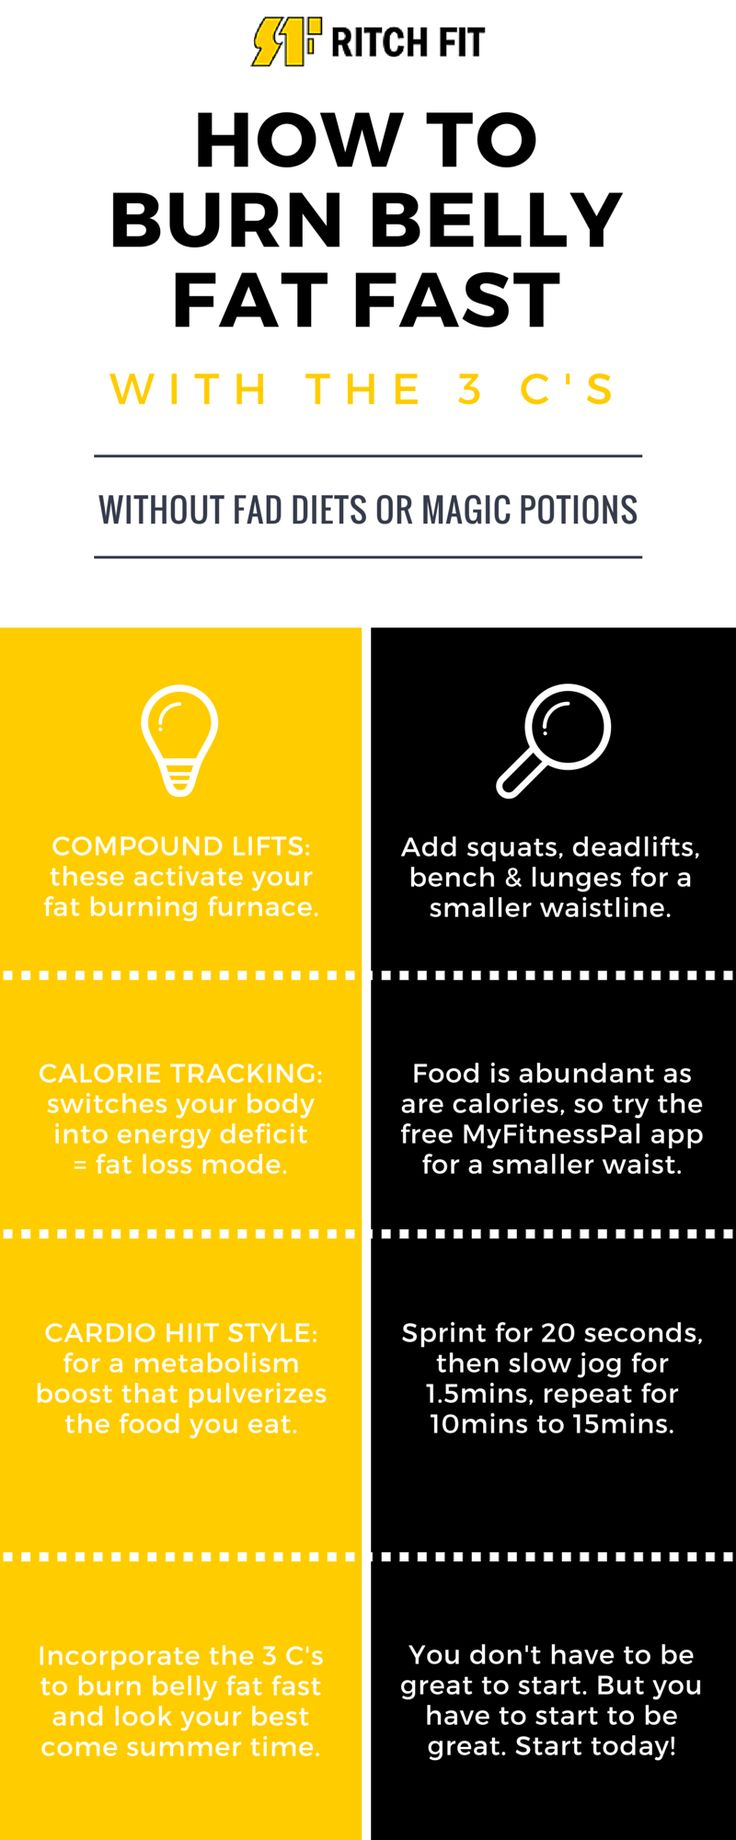 Weight training for fat loss at home image 20